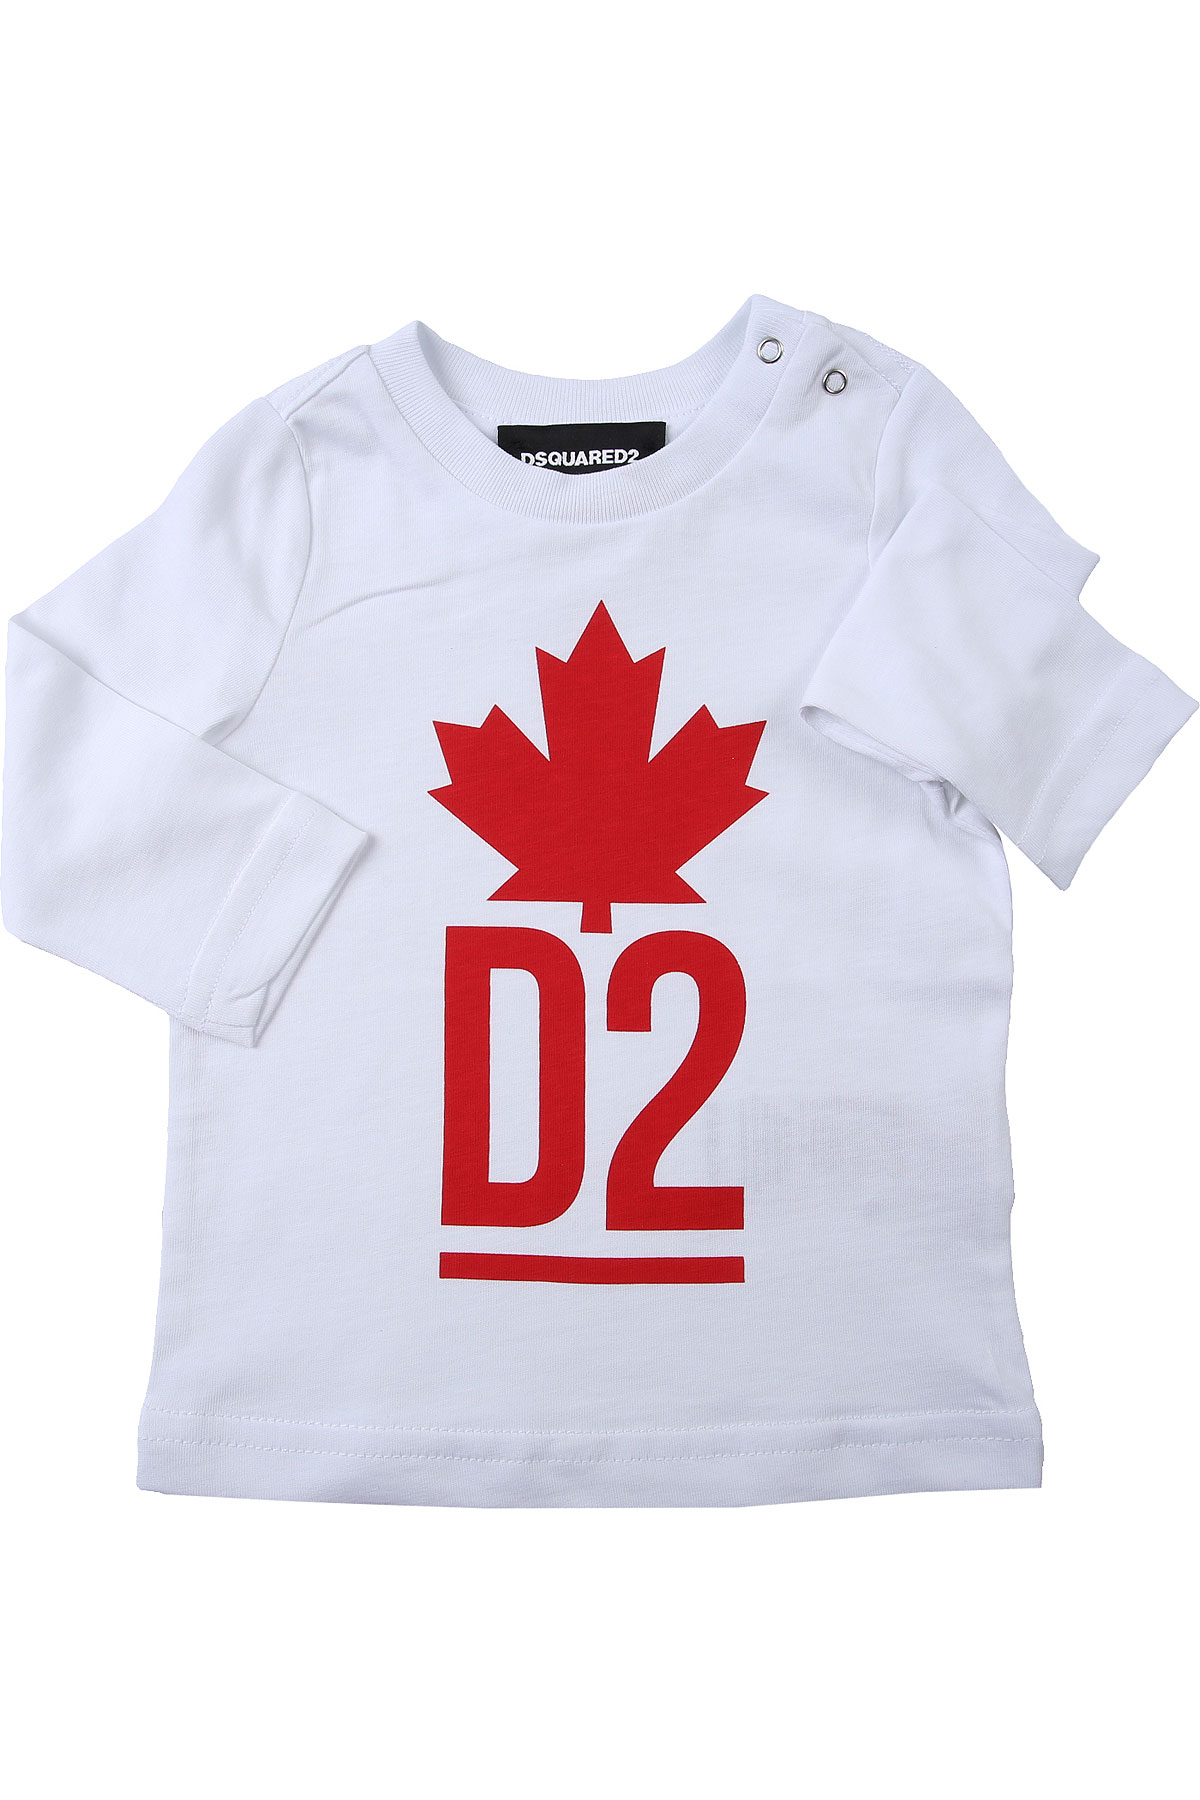 Dsquared2 Baby T-Shirt for Boys On Sale, White, Cotton, 2019, 12 M 18M 2Y 3Y 6M 9M